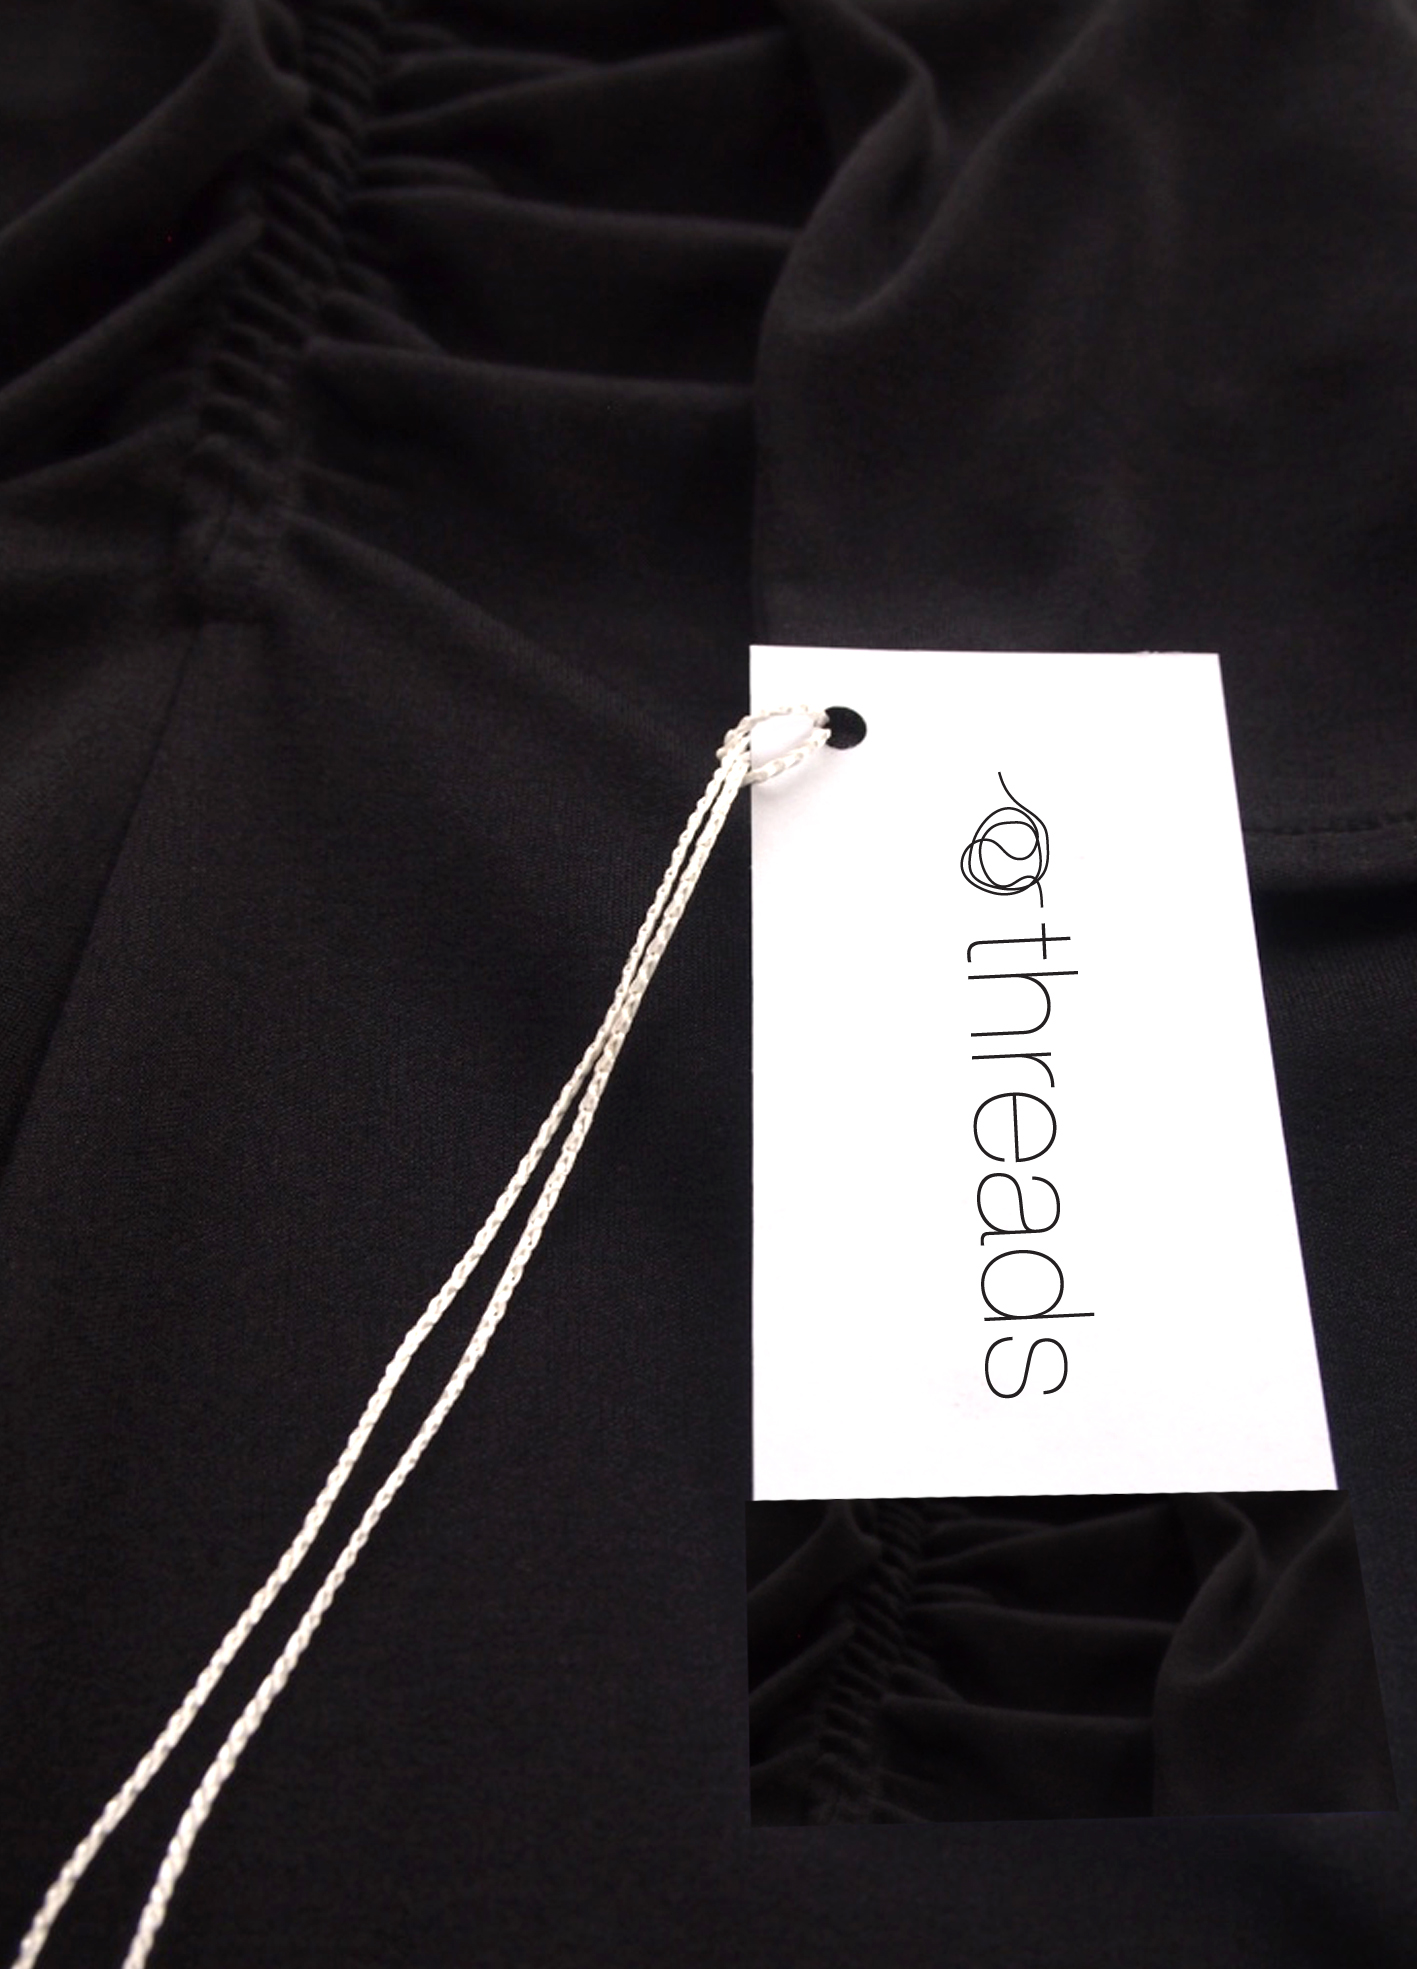 [Threads] 2013 Creation of a brand identity for Threads, a part of Sadigray Boutique. [Above front of clothing label]